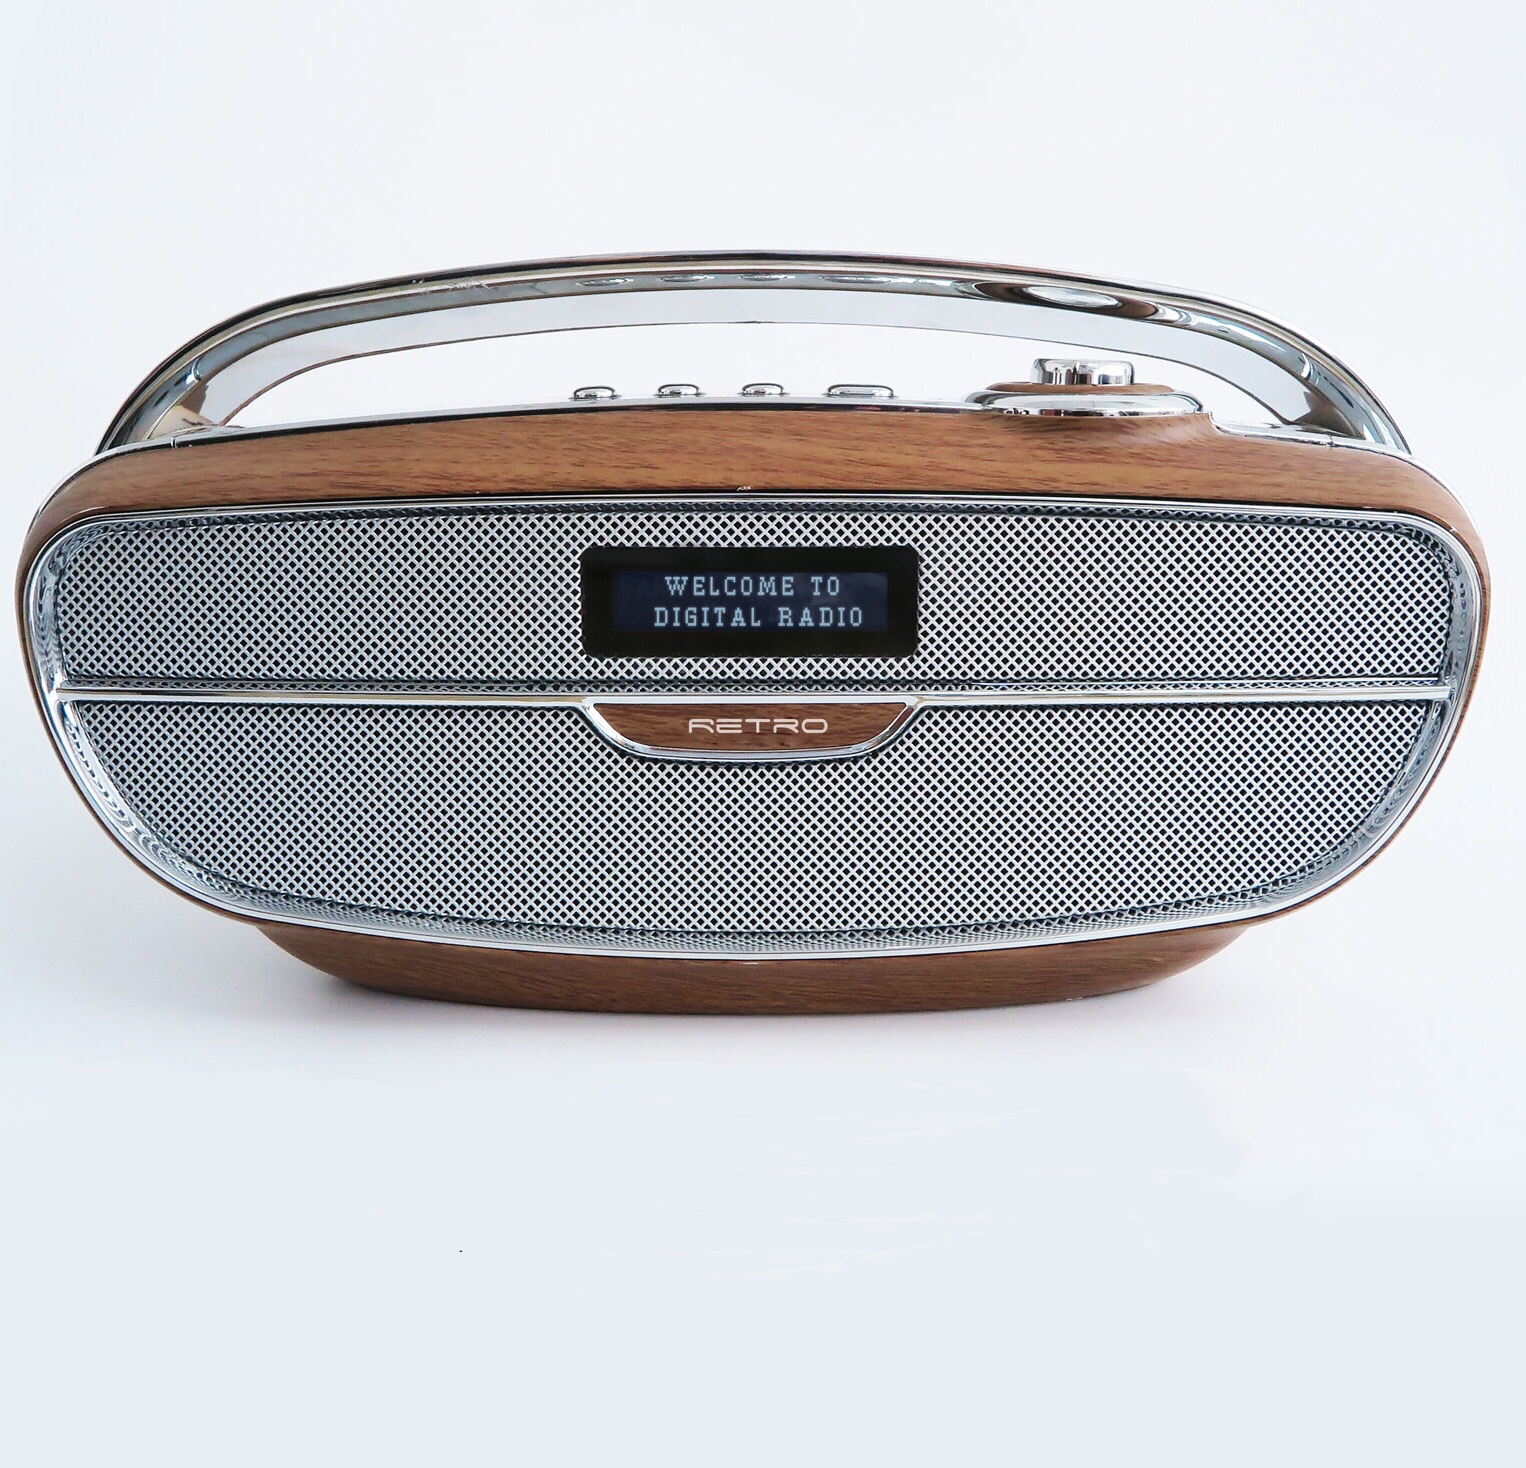 Shaba Bluetooths dengan DAB Radio Speaker dengan LCD Display Nirkabel Speaker Kuat Suara Stereo Bass 5 Preset EQ